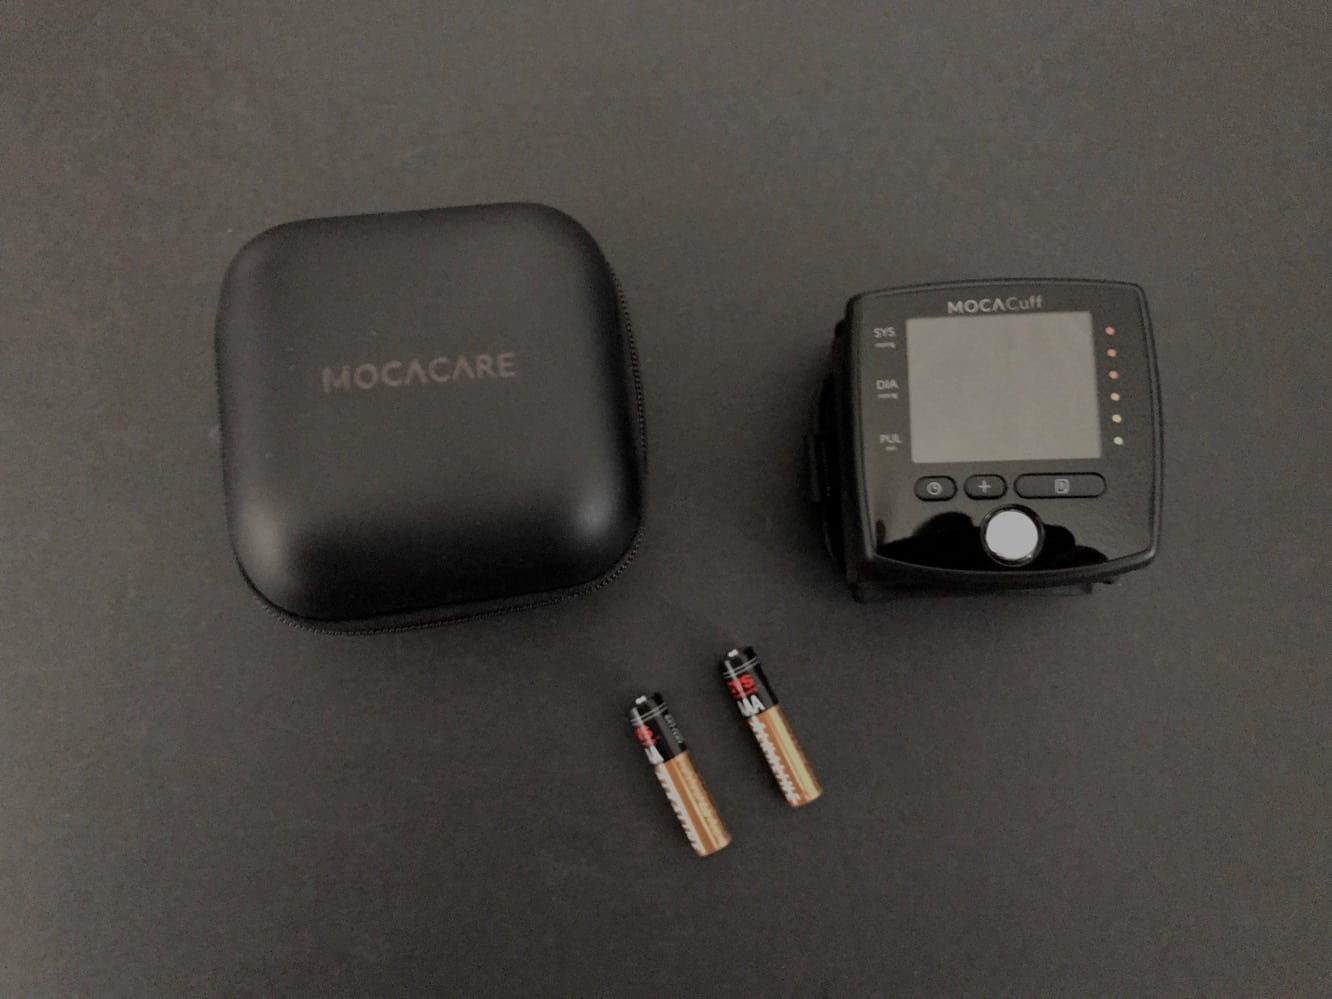 Review: MOCACARE MOCACuff Connected Blood Pressure Monitor